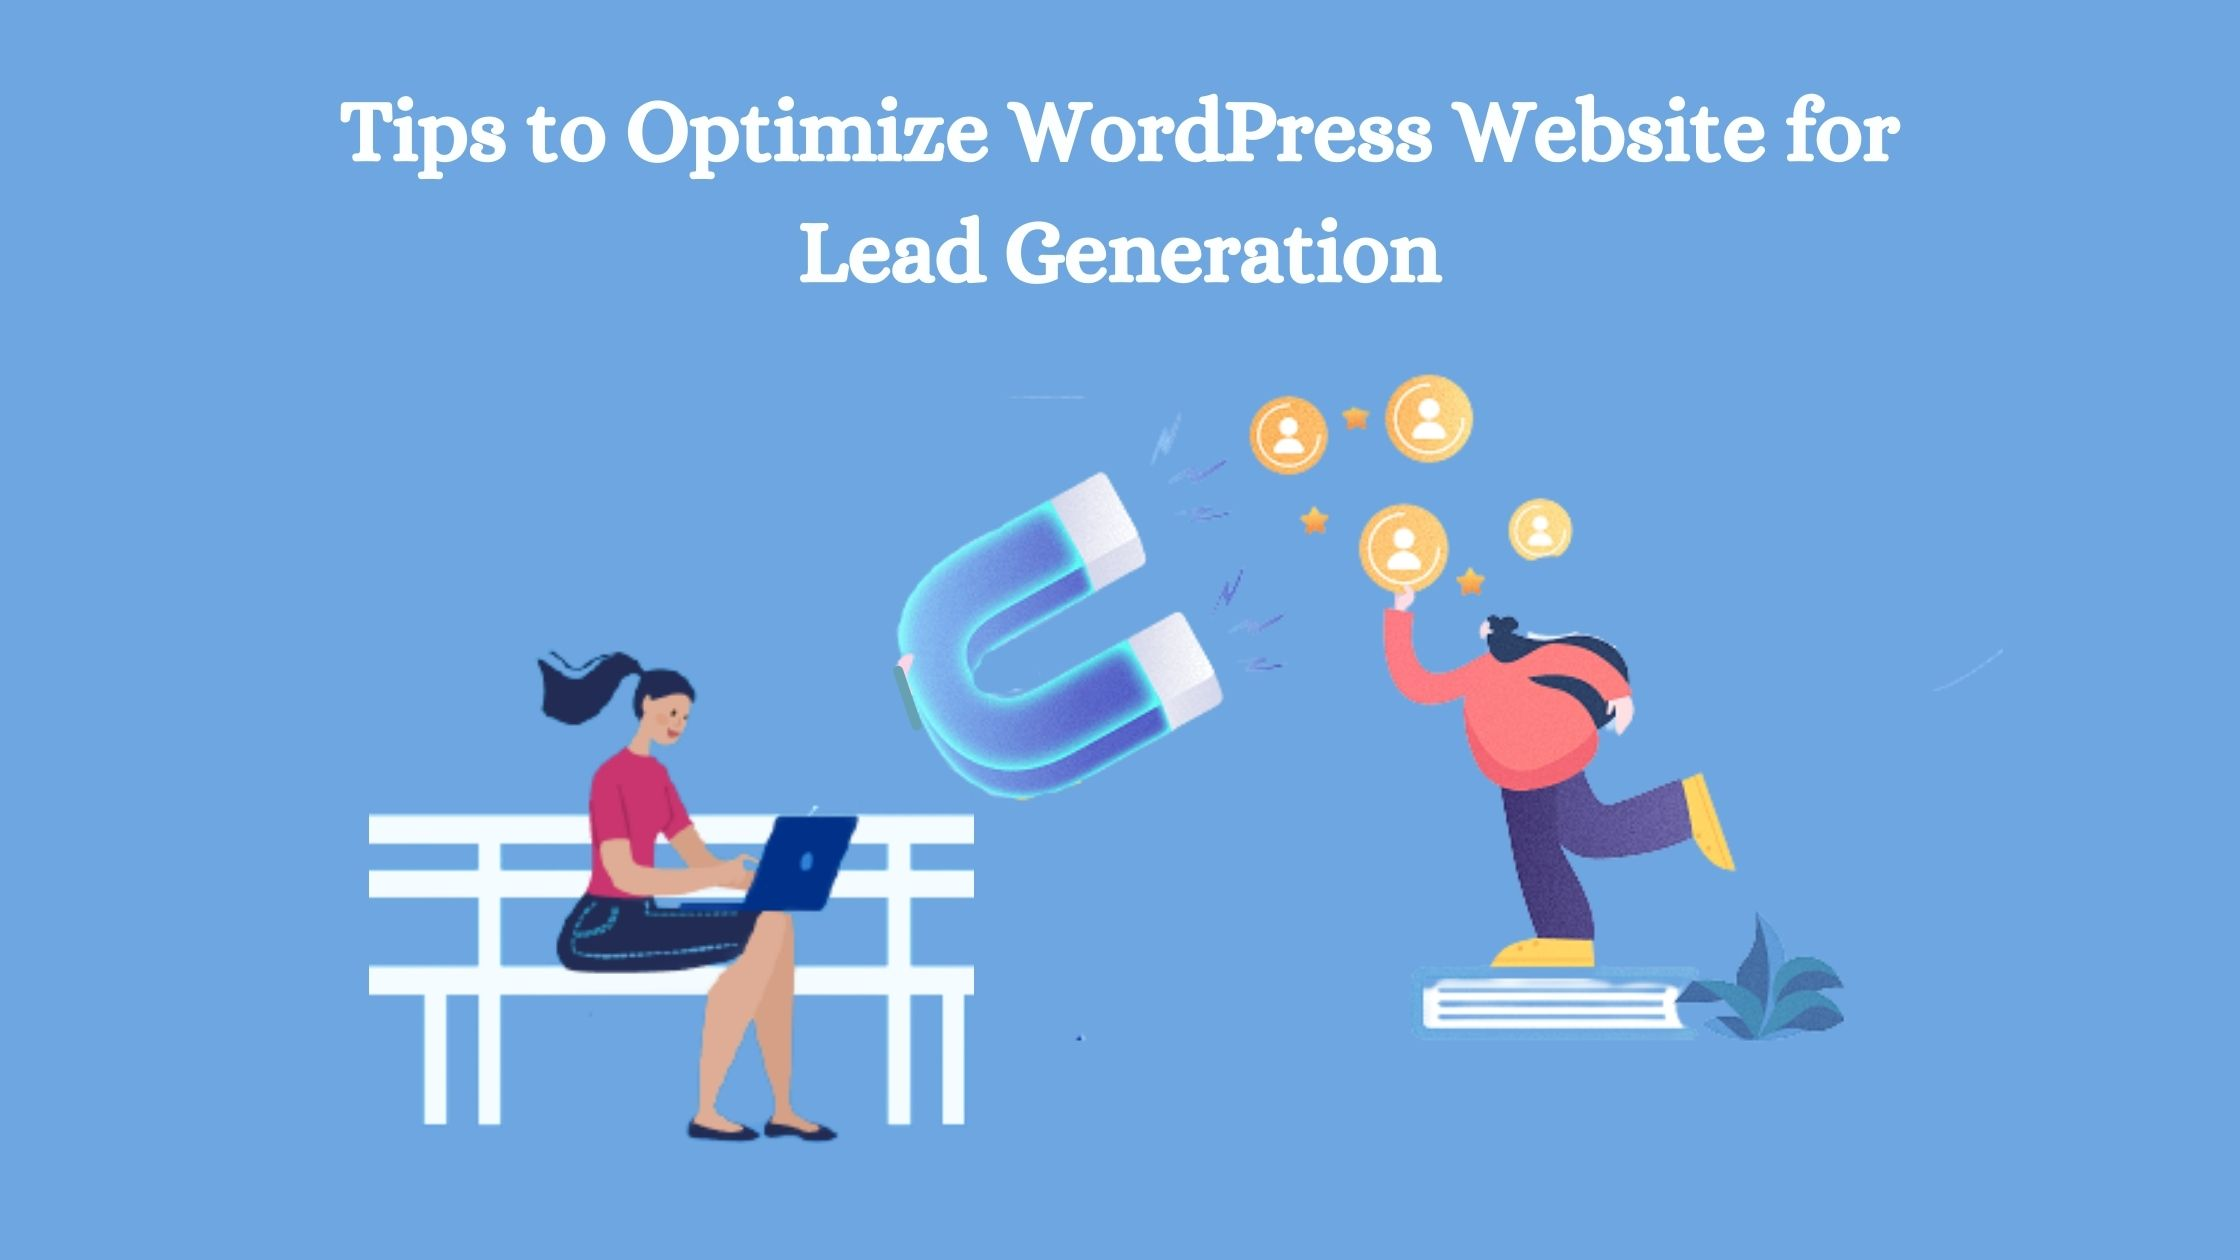 Tips to Optimize WordPress Website for Lead Generation